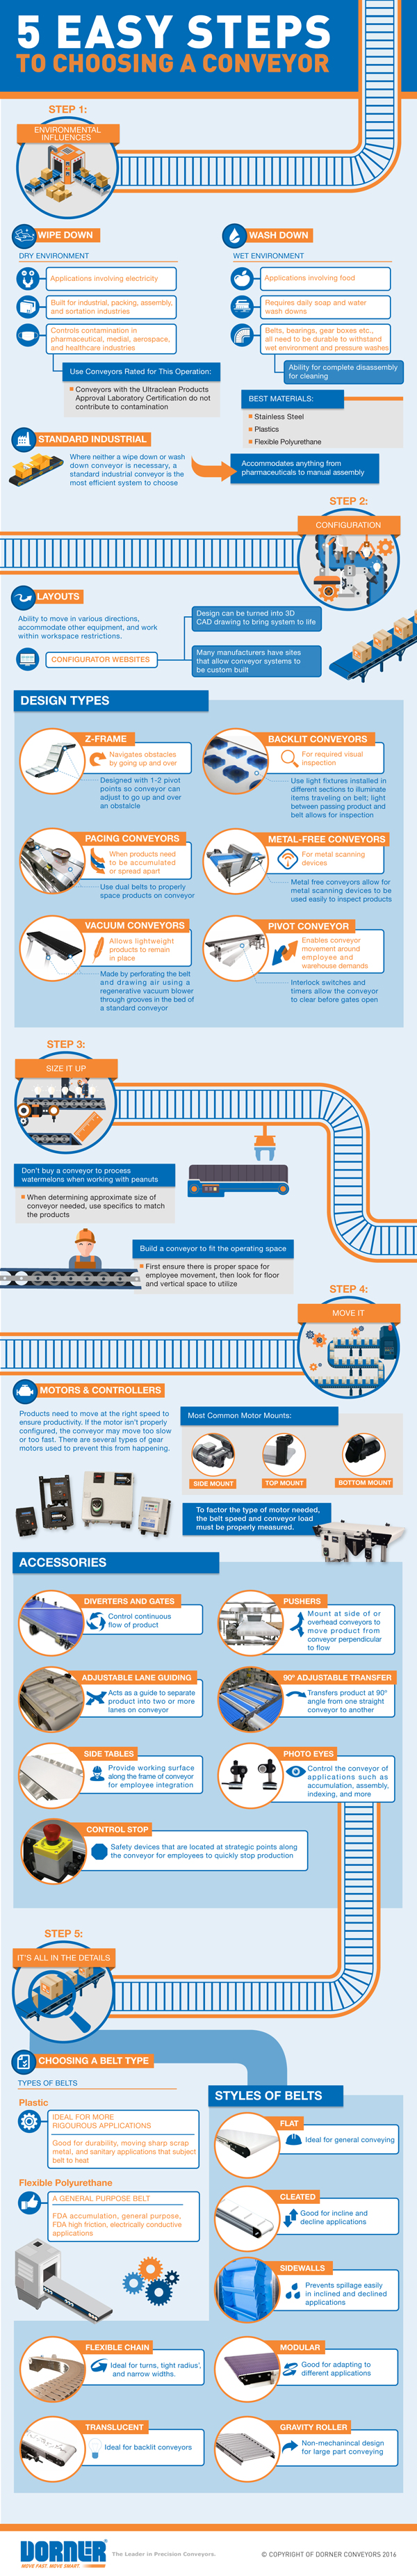 5 Easy Steps to Choosing a Conveyor